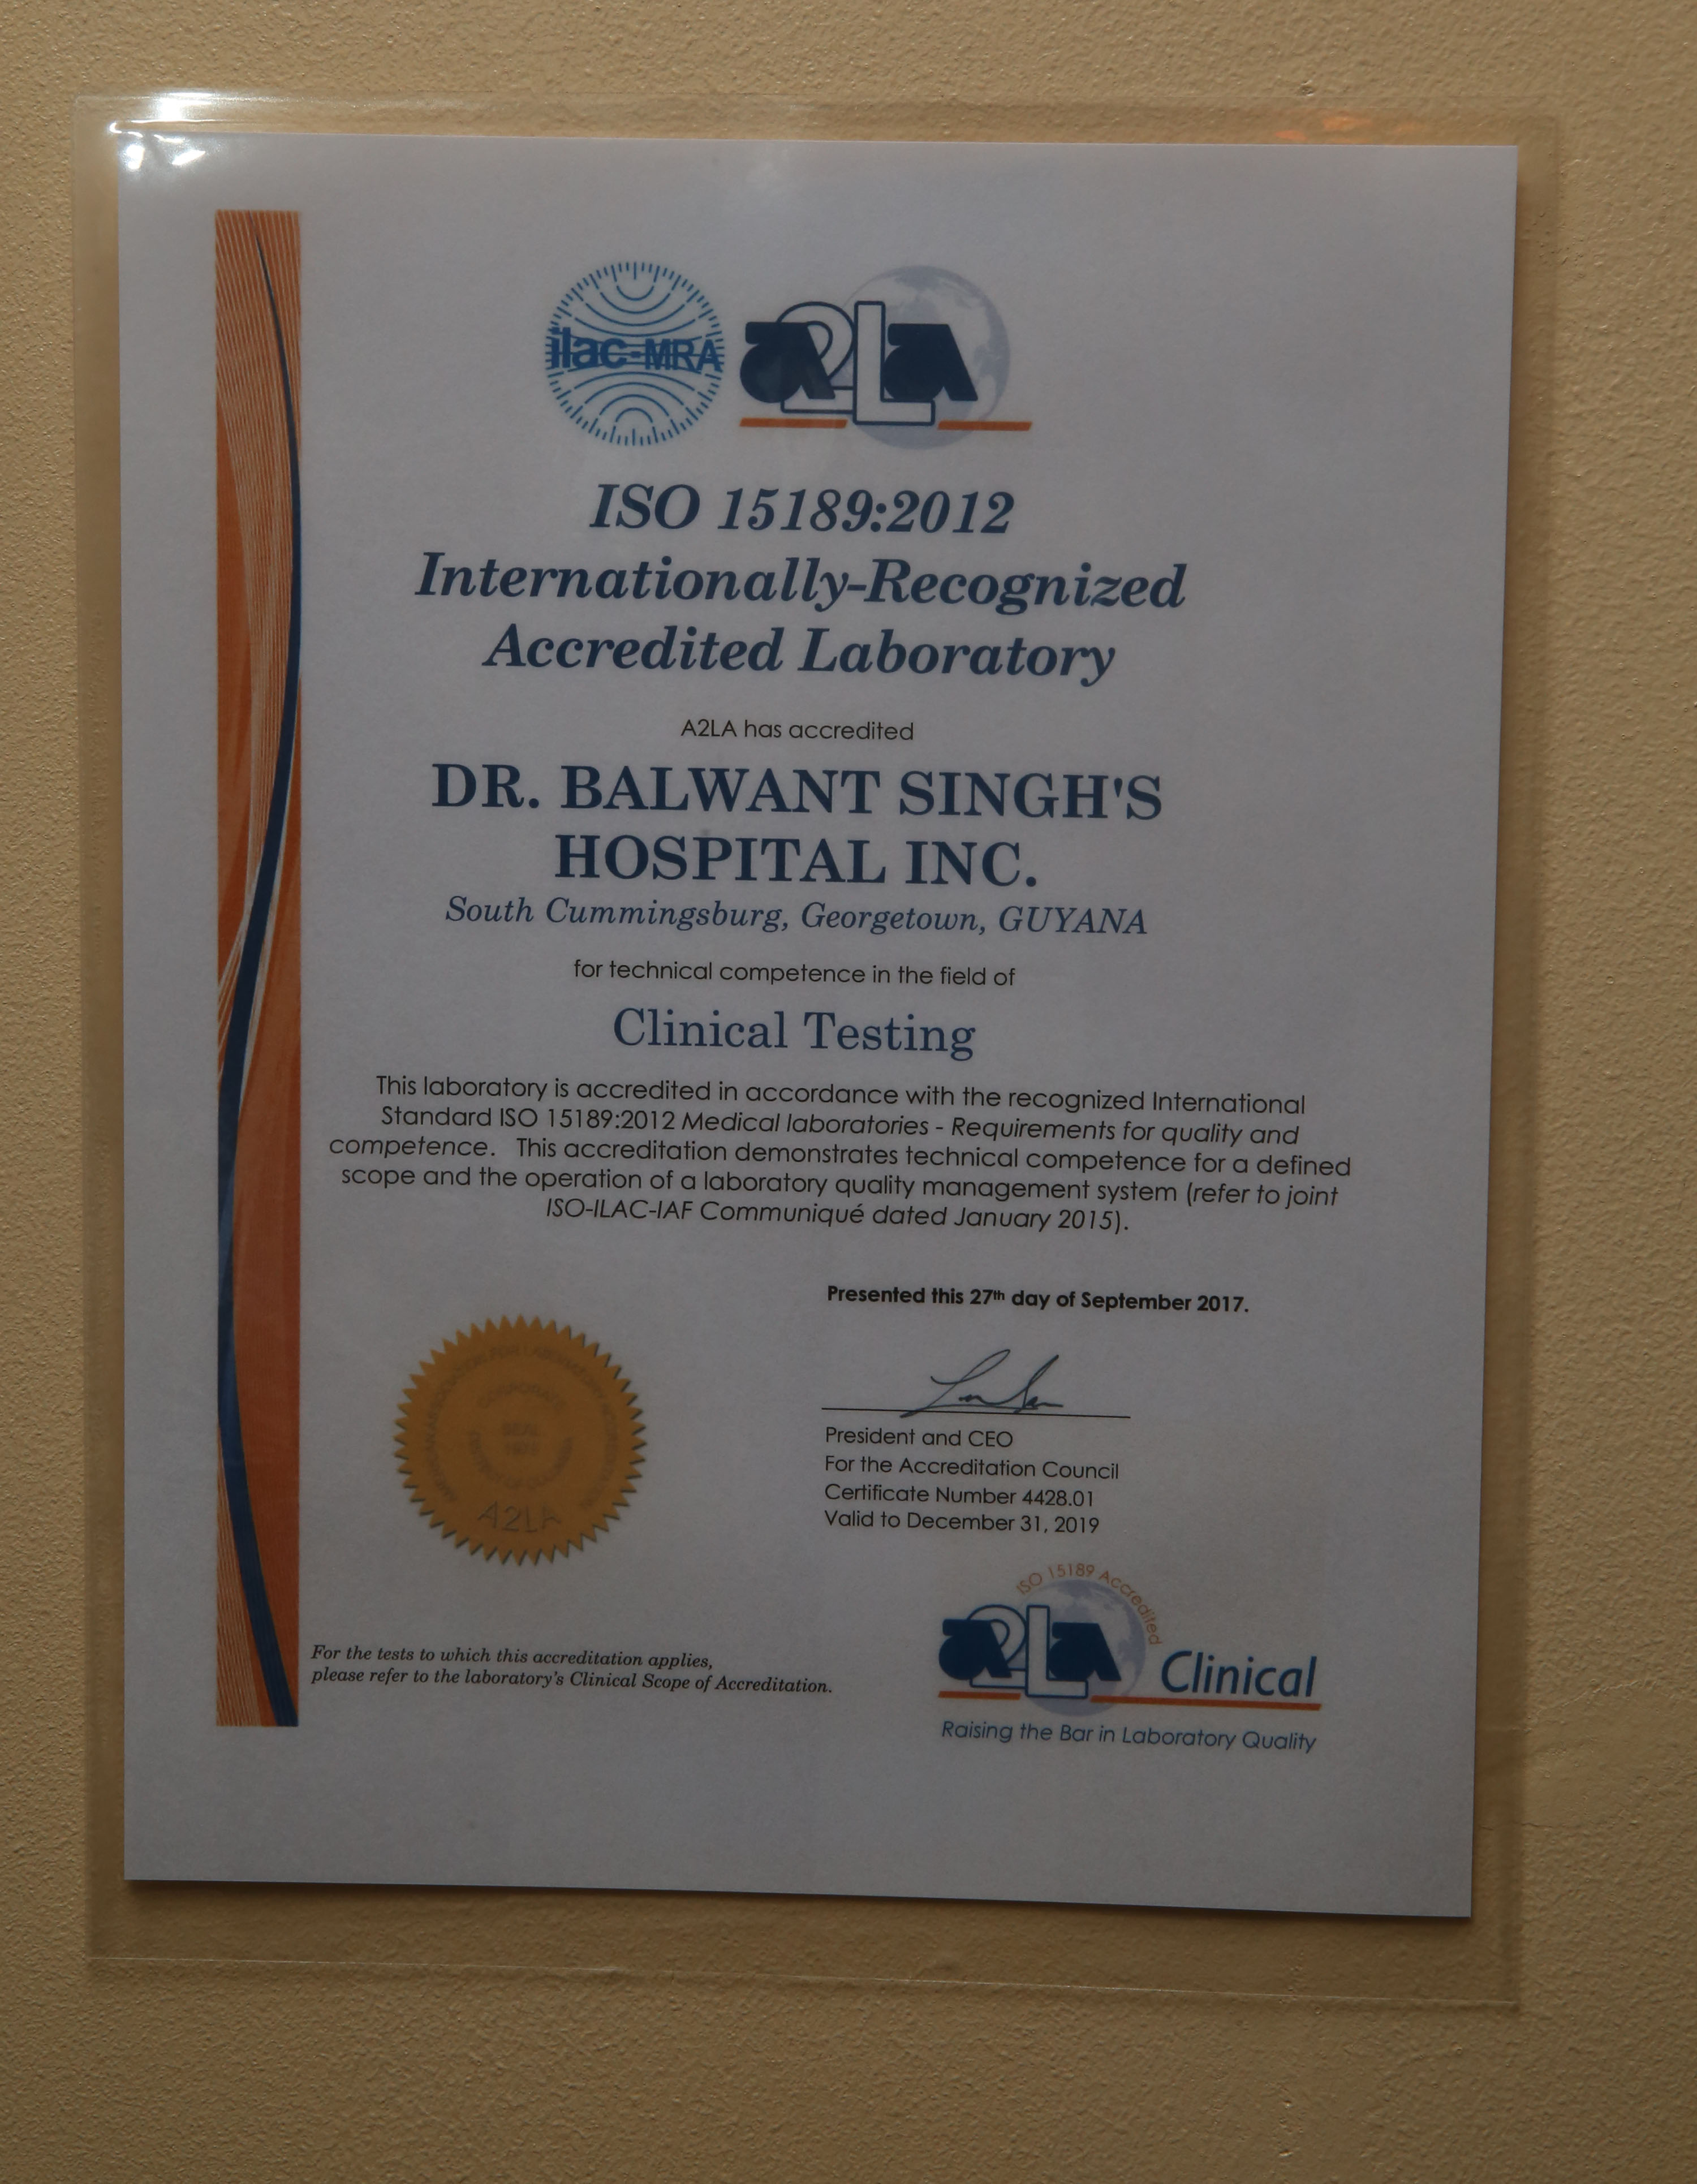 Dr balwant singhs labs attain international status first in the iso 151892012 certificate of accreditation which was presented to the dr balwant singhs hospital inc keno george photo xflitez Gallery